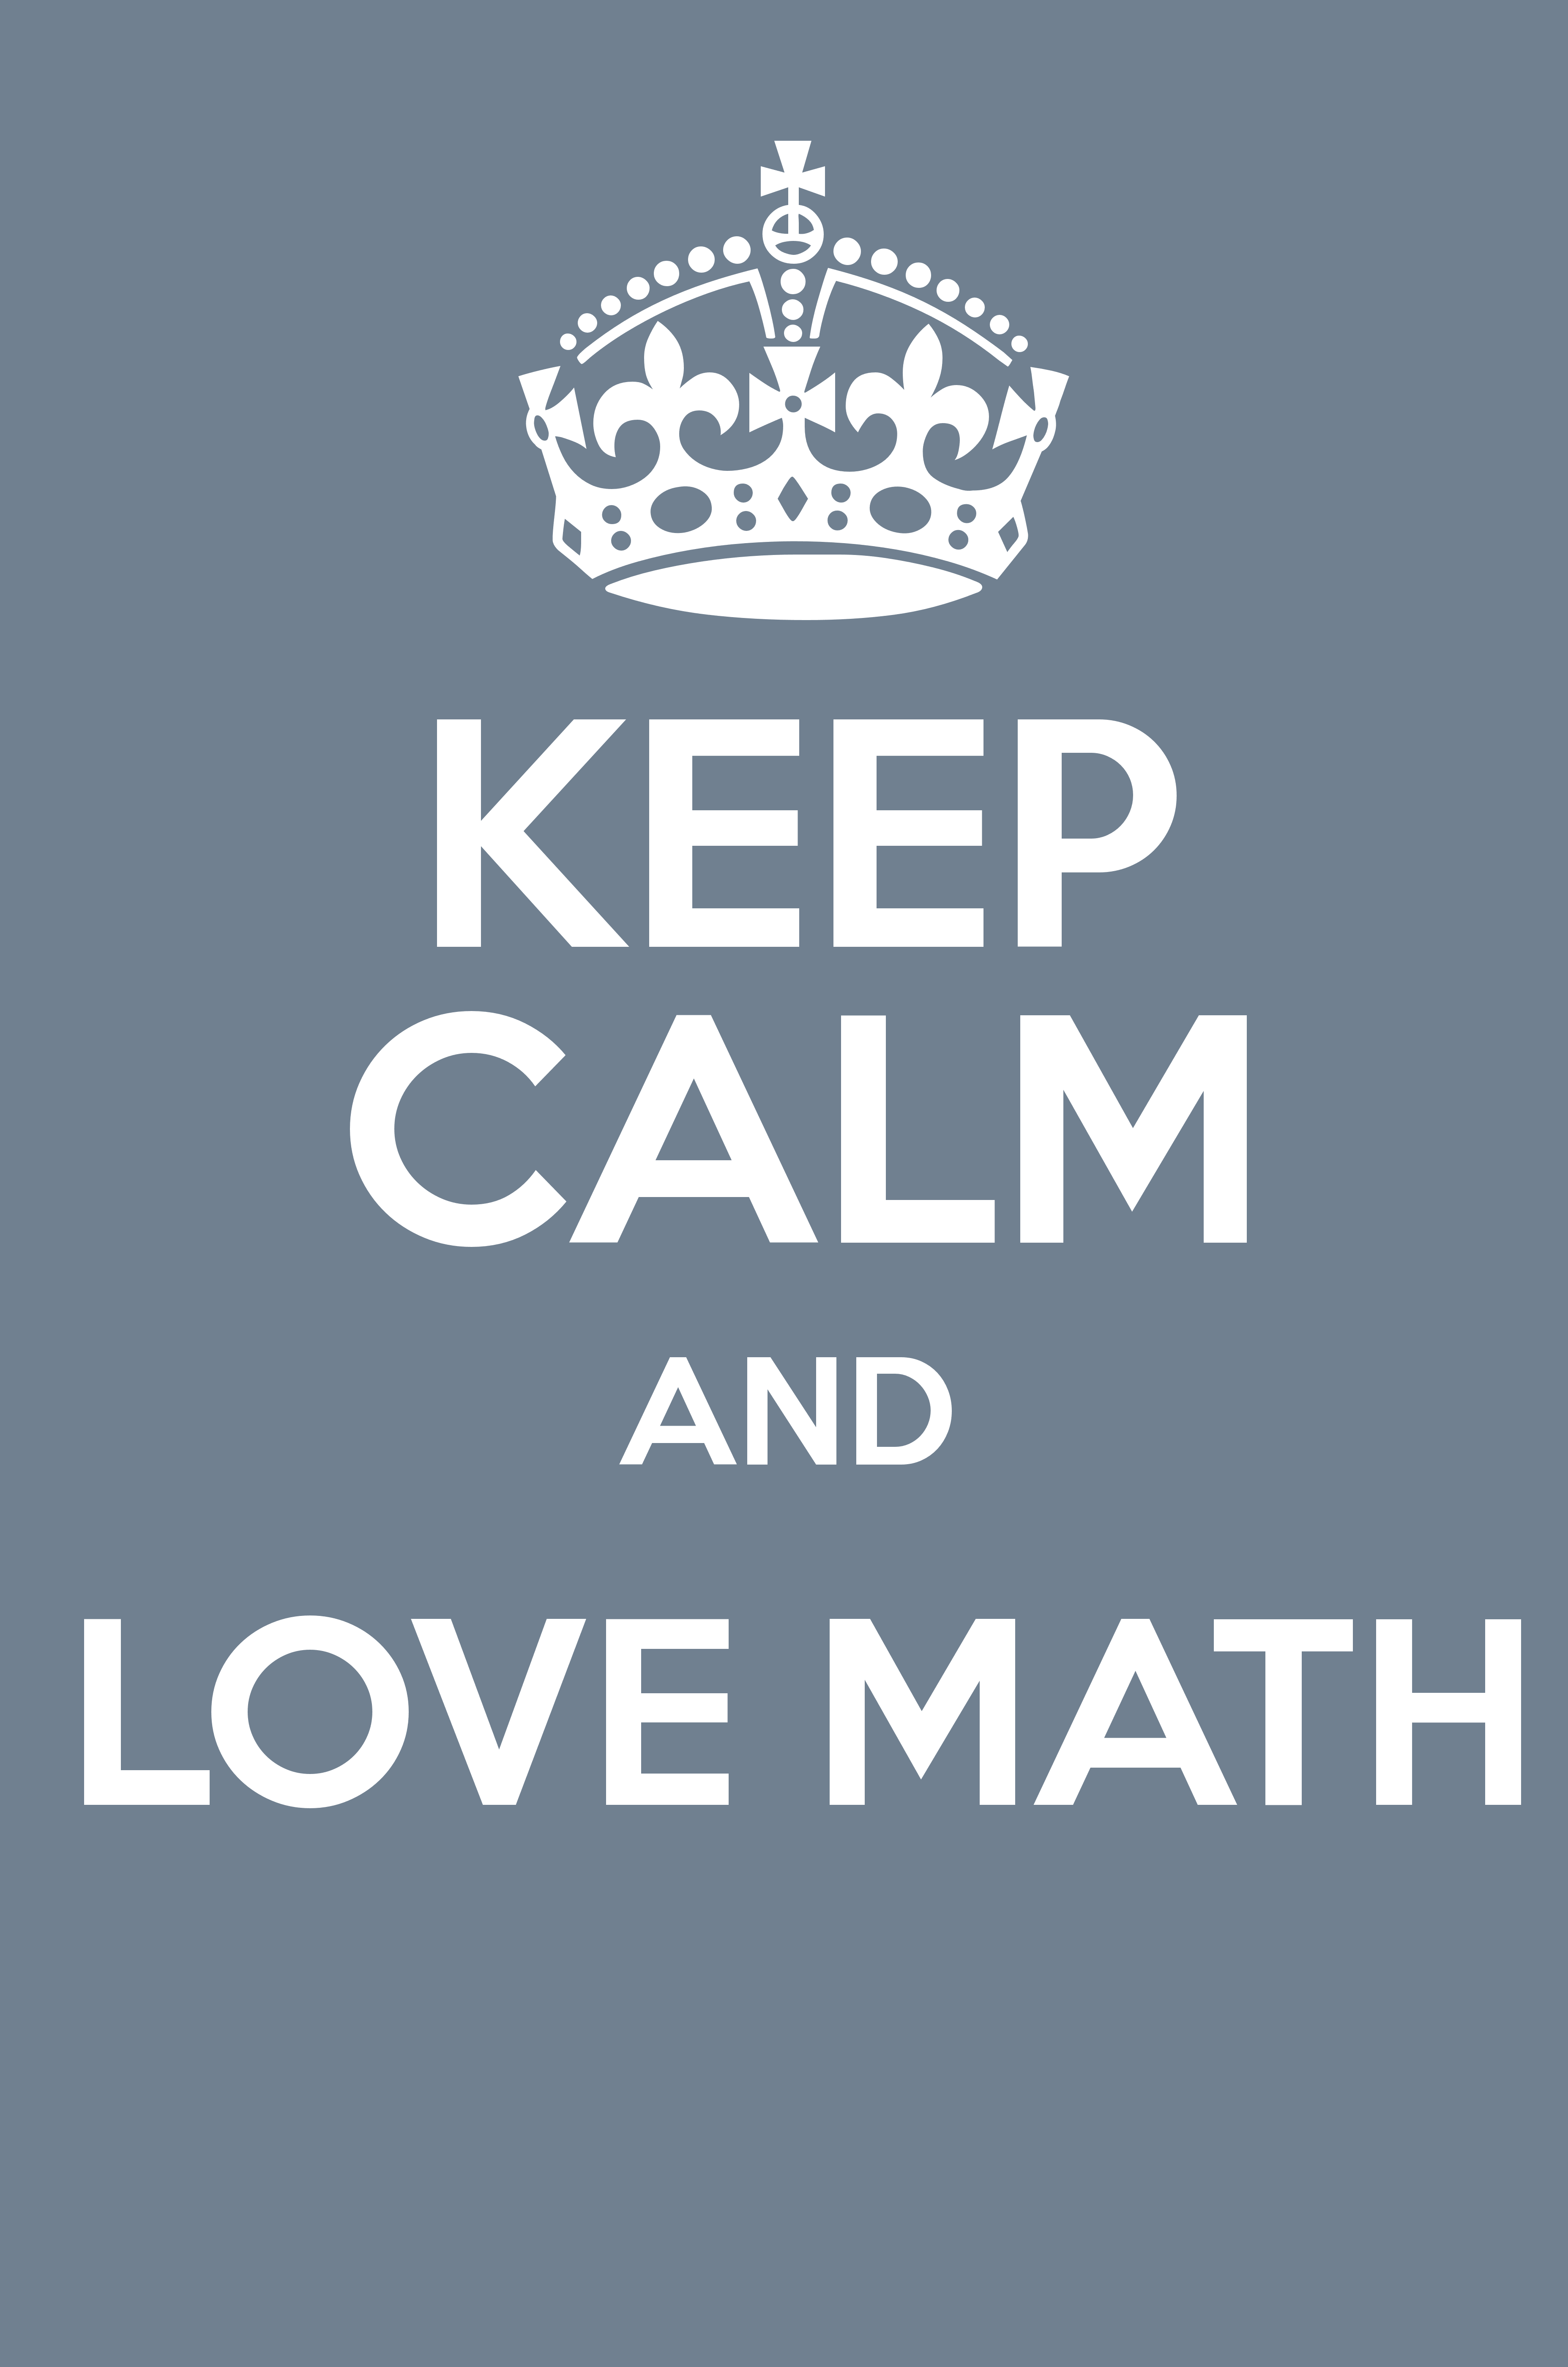 keep calm and love math - keep calm and posters generator, maker for